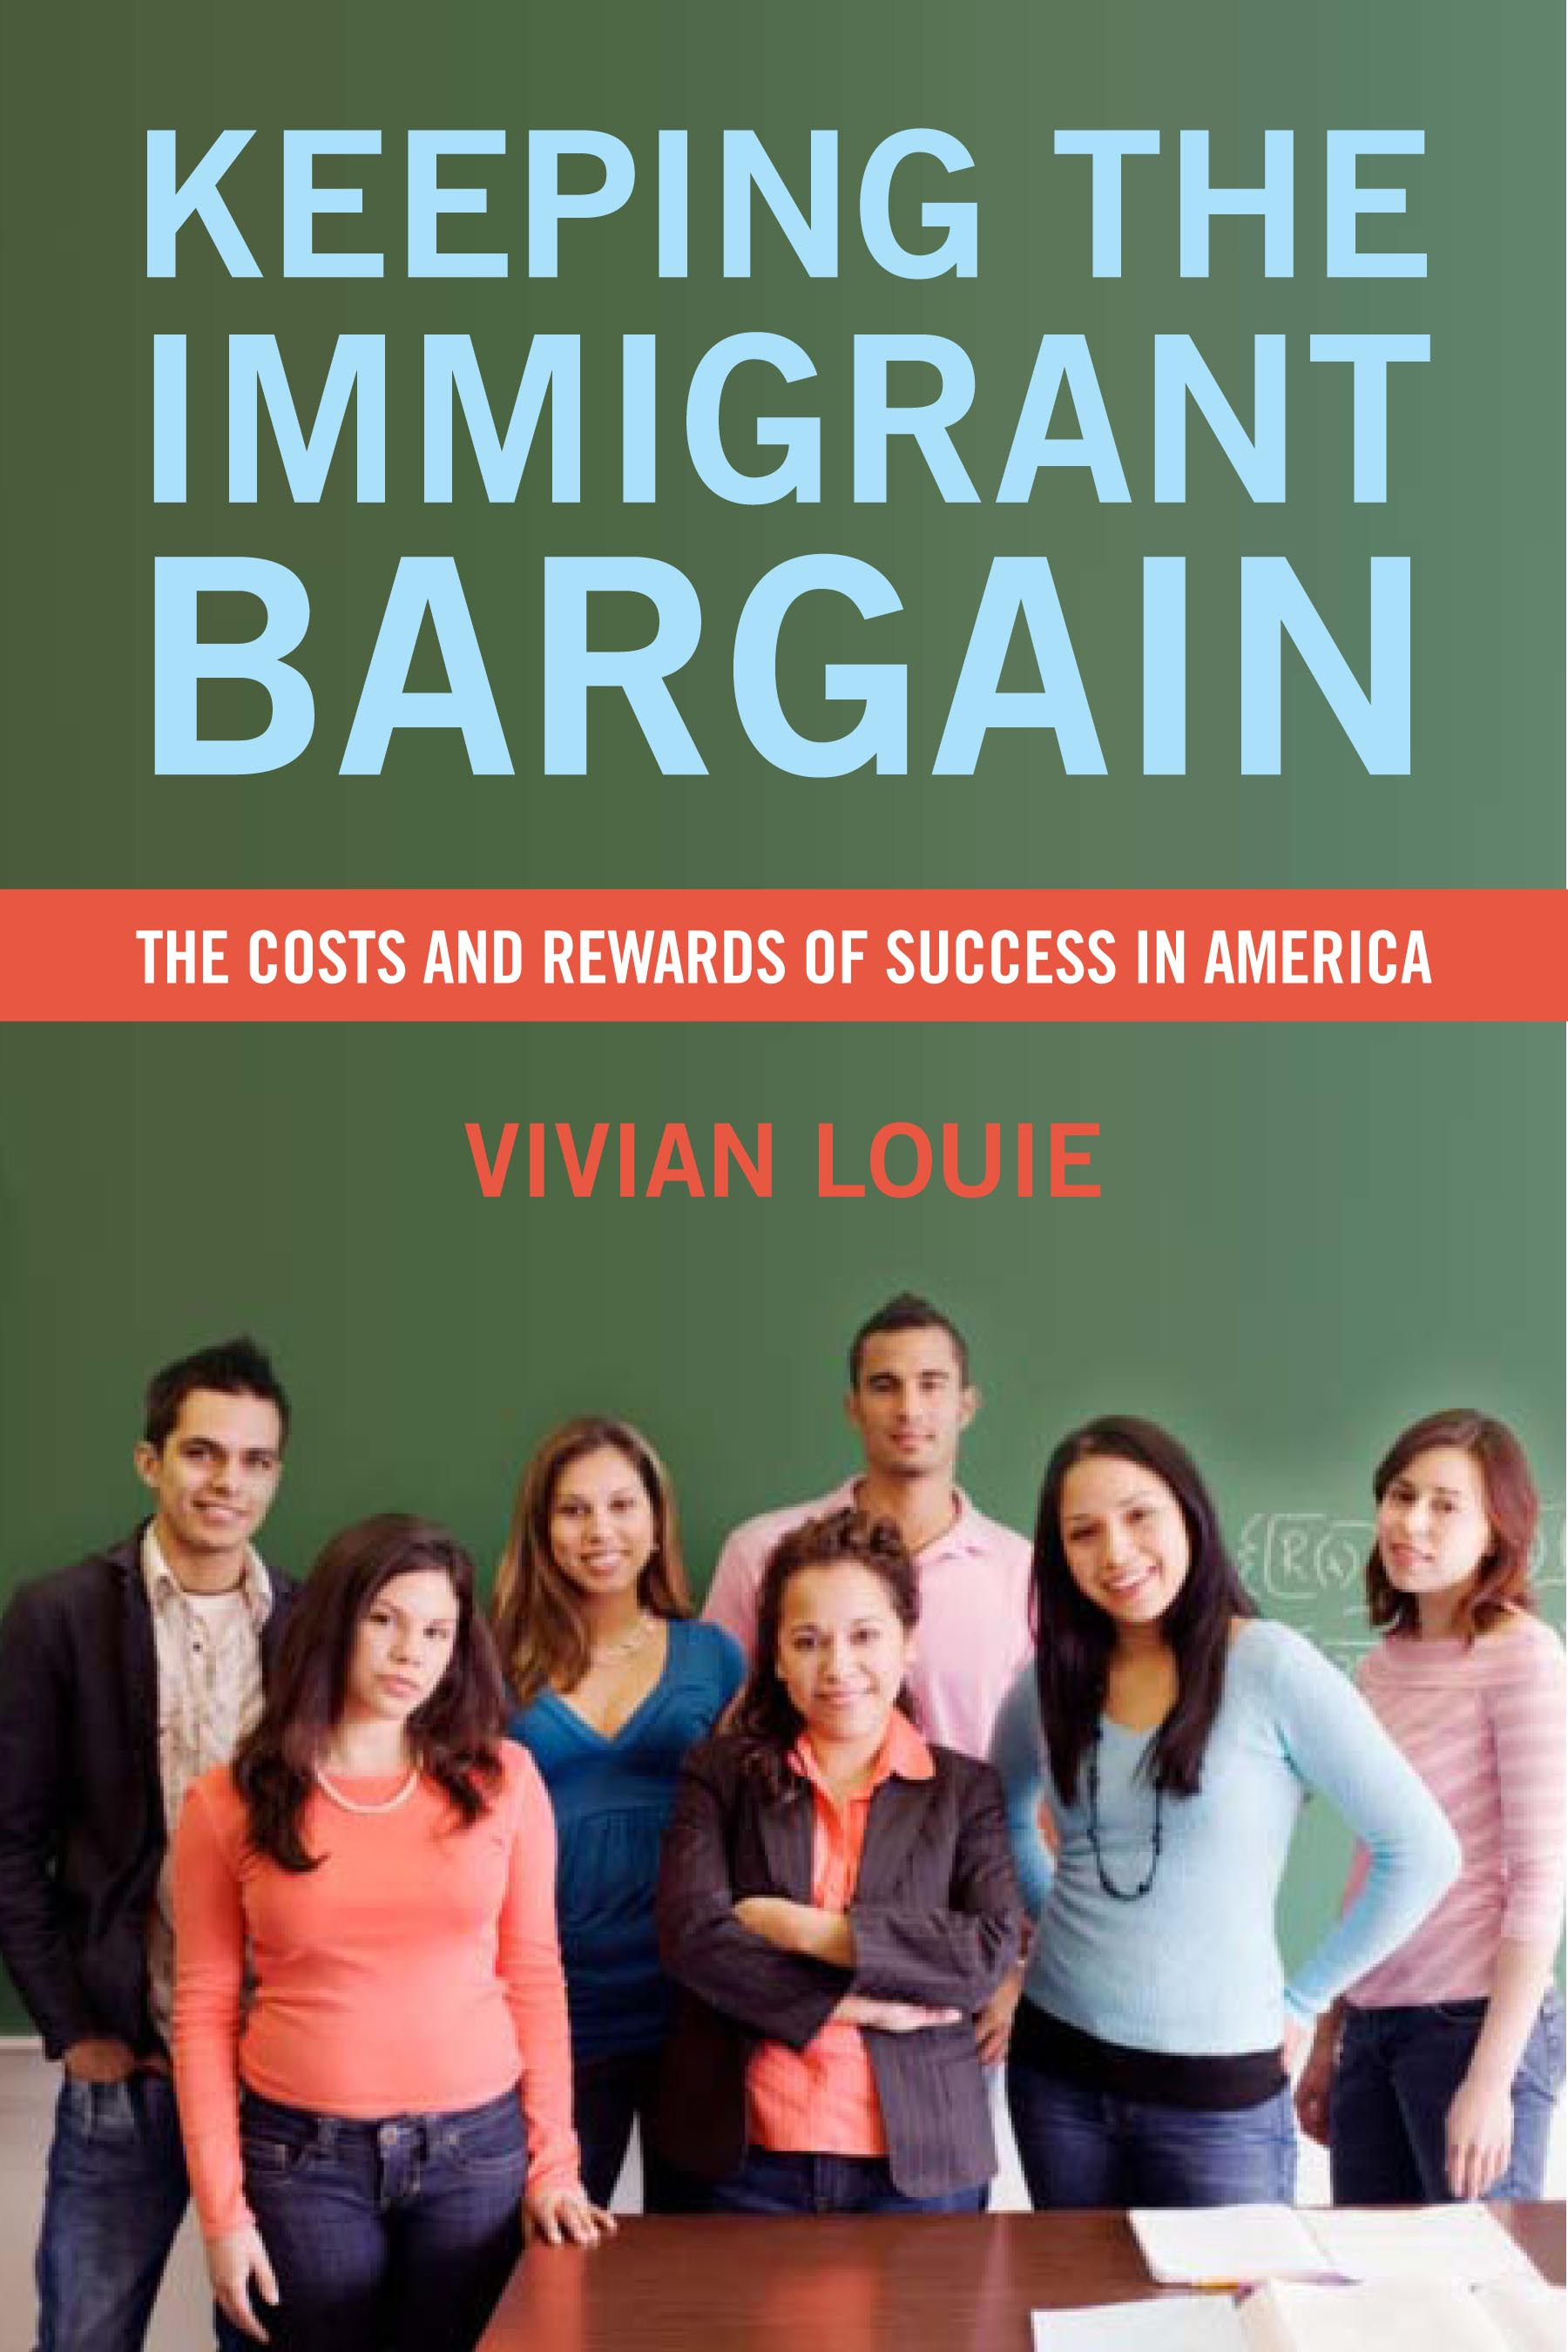 Keeping the Immigrant Bargain